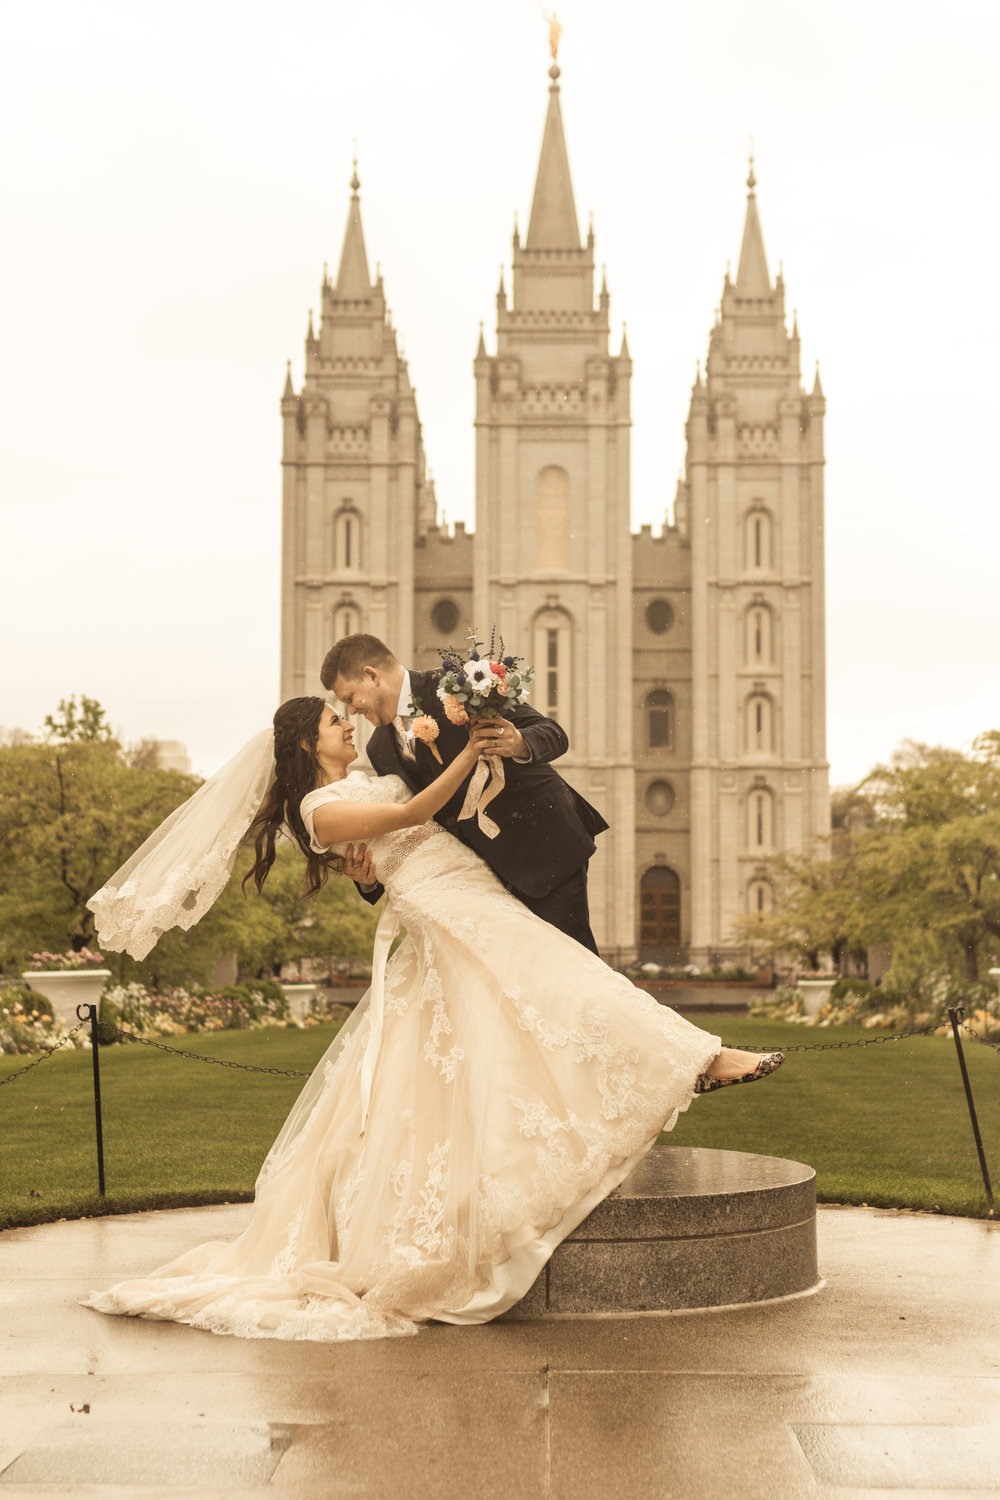 Rainy Spring Wedding at the Salt Lake Templeby Bri Bergman Photography04.JPG